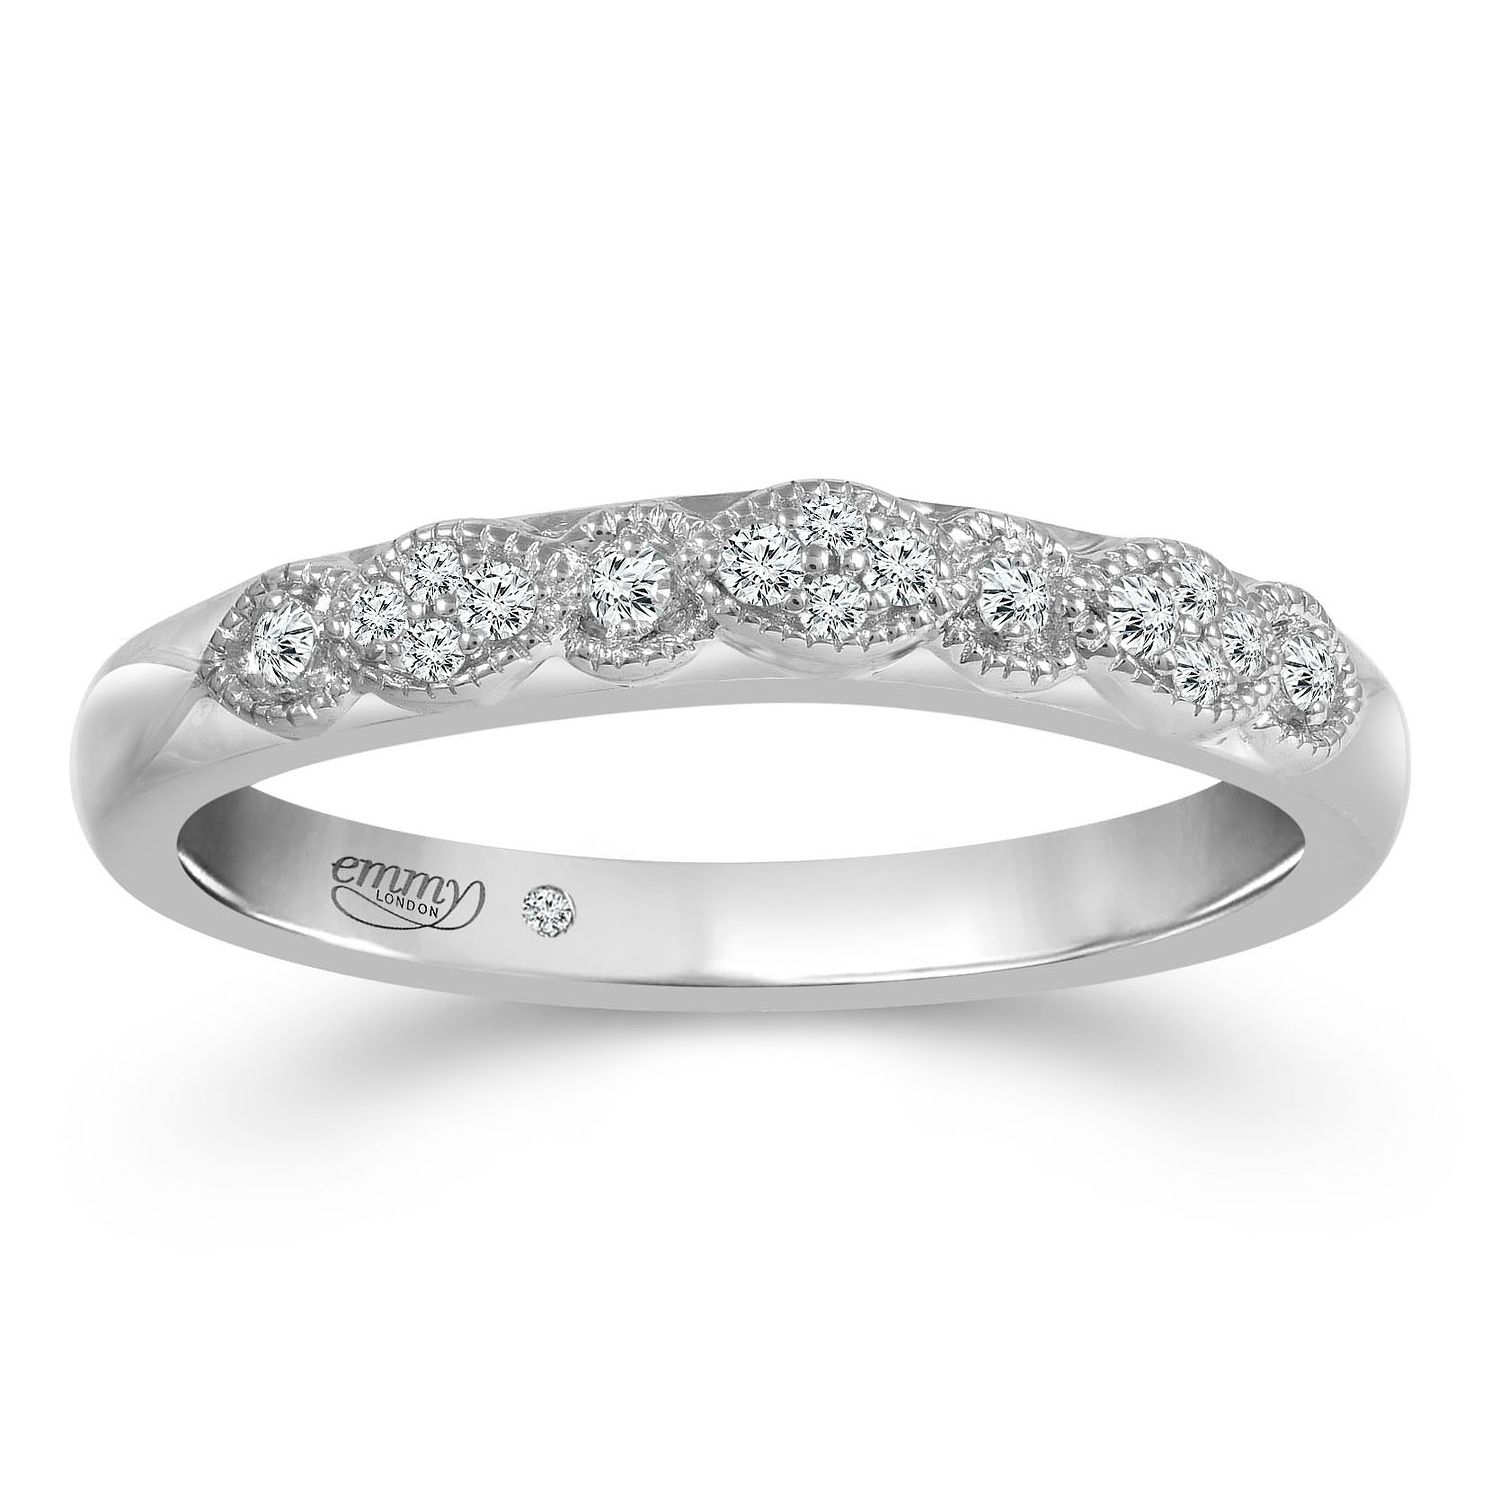 Emmy London 18ct White Gold Diamond Eternity Ring - Product number 2883791